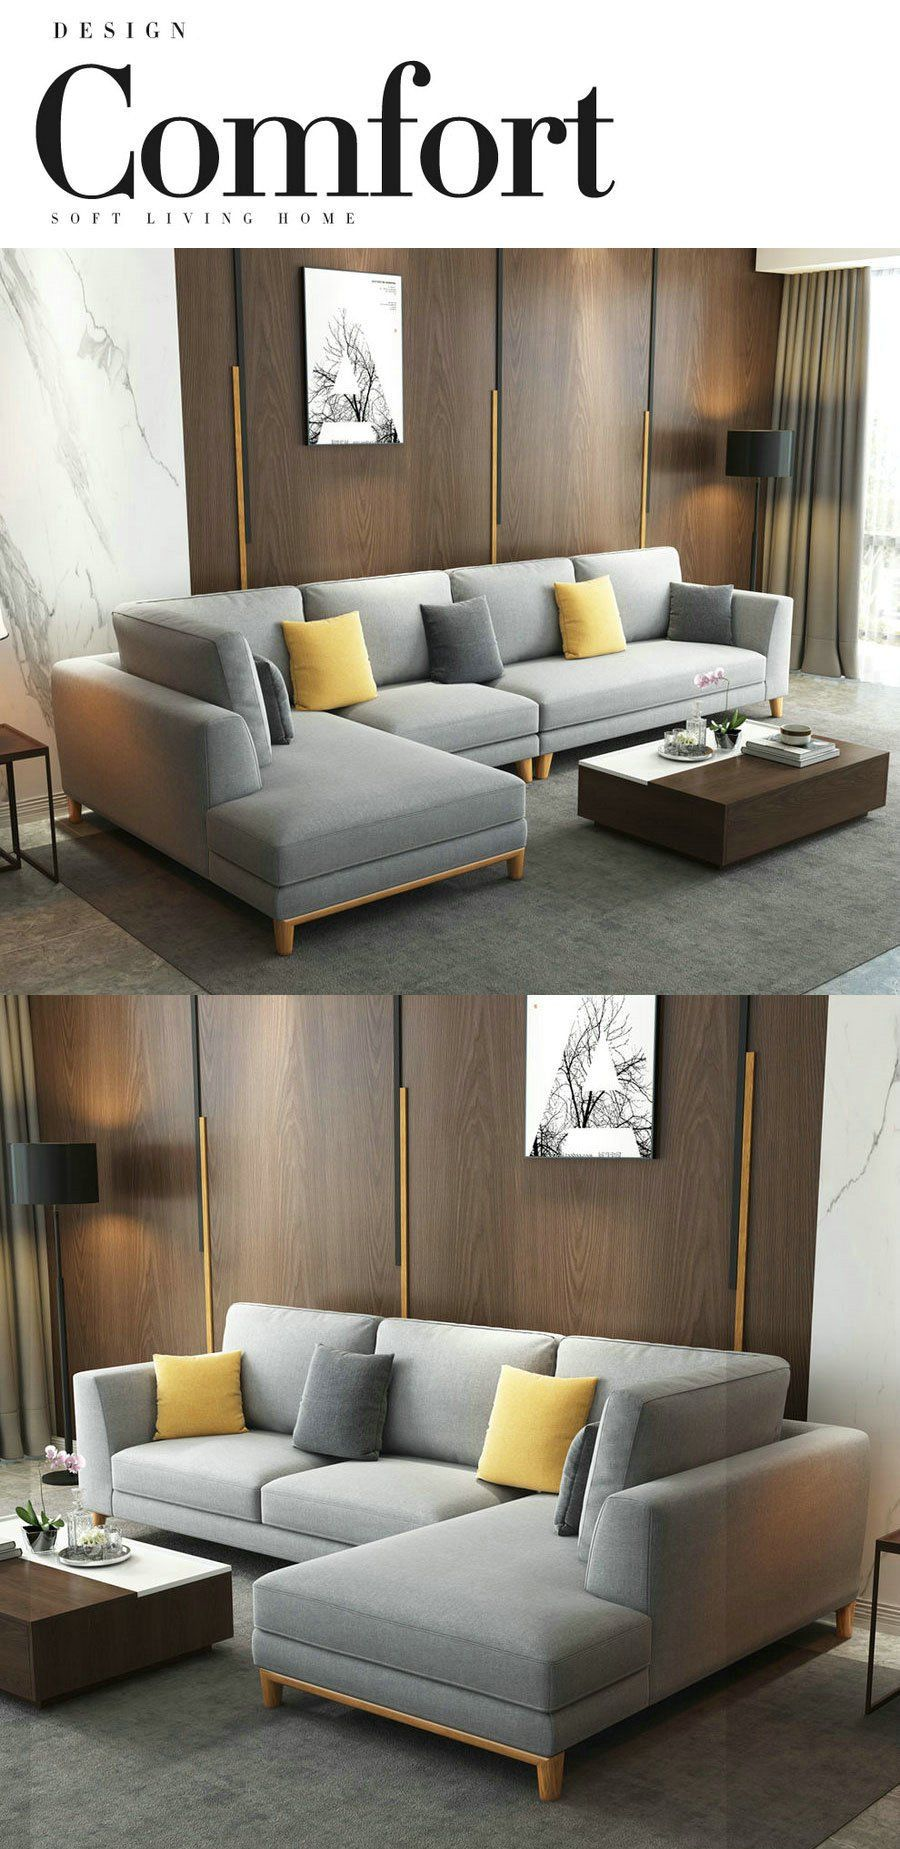 L Shaped Couch Small Living Room In 2020